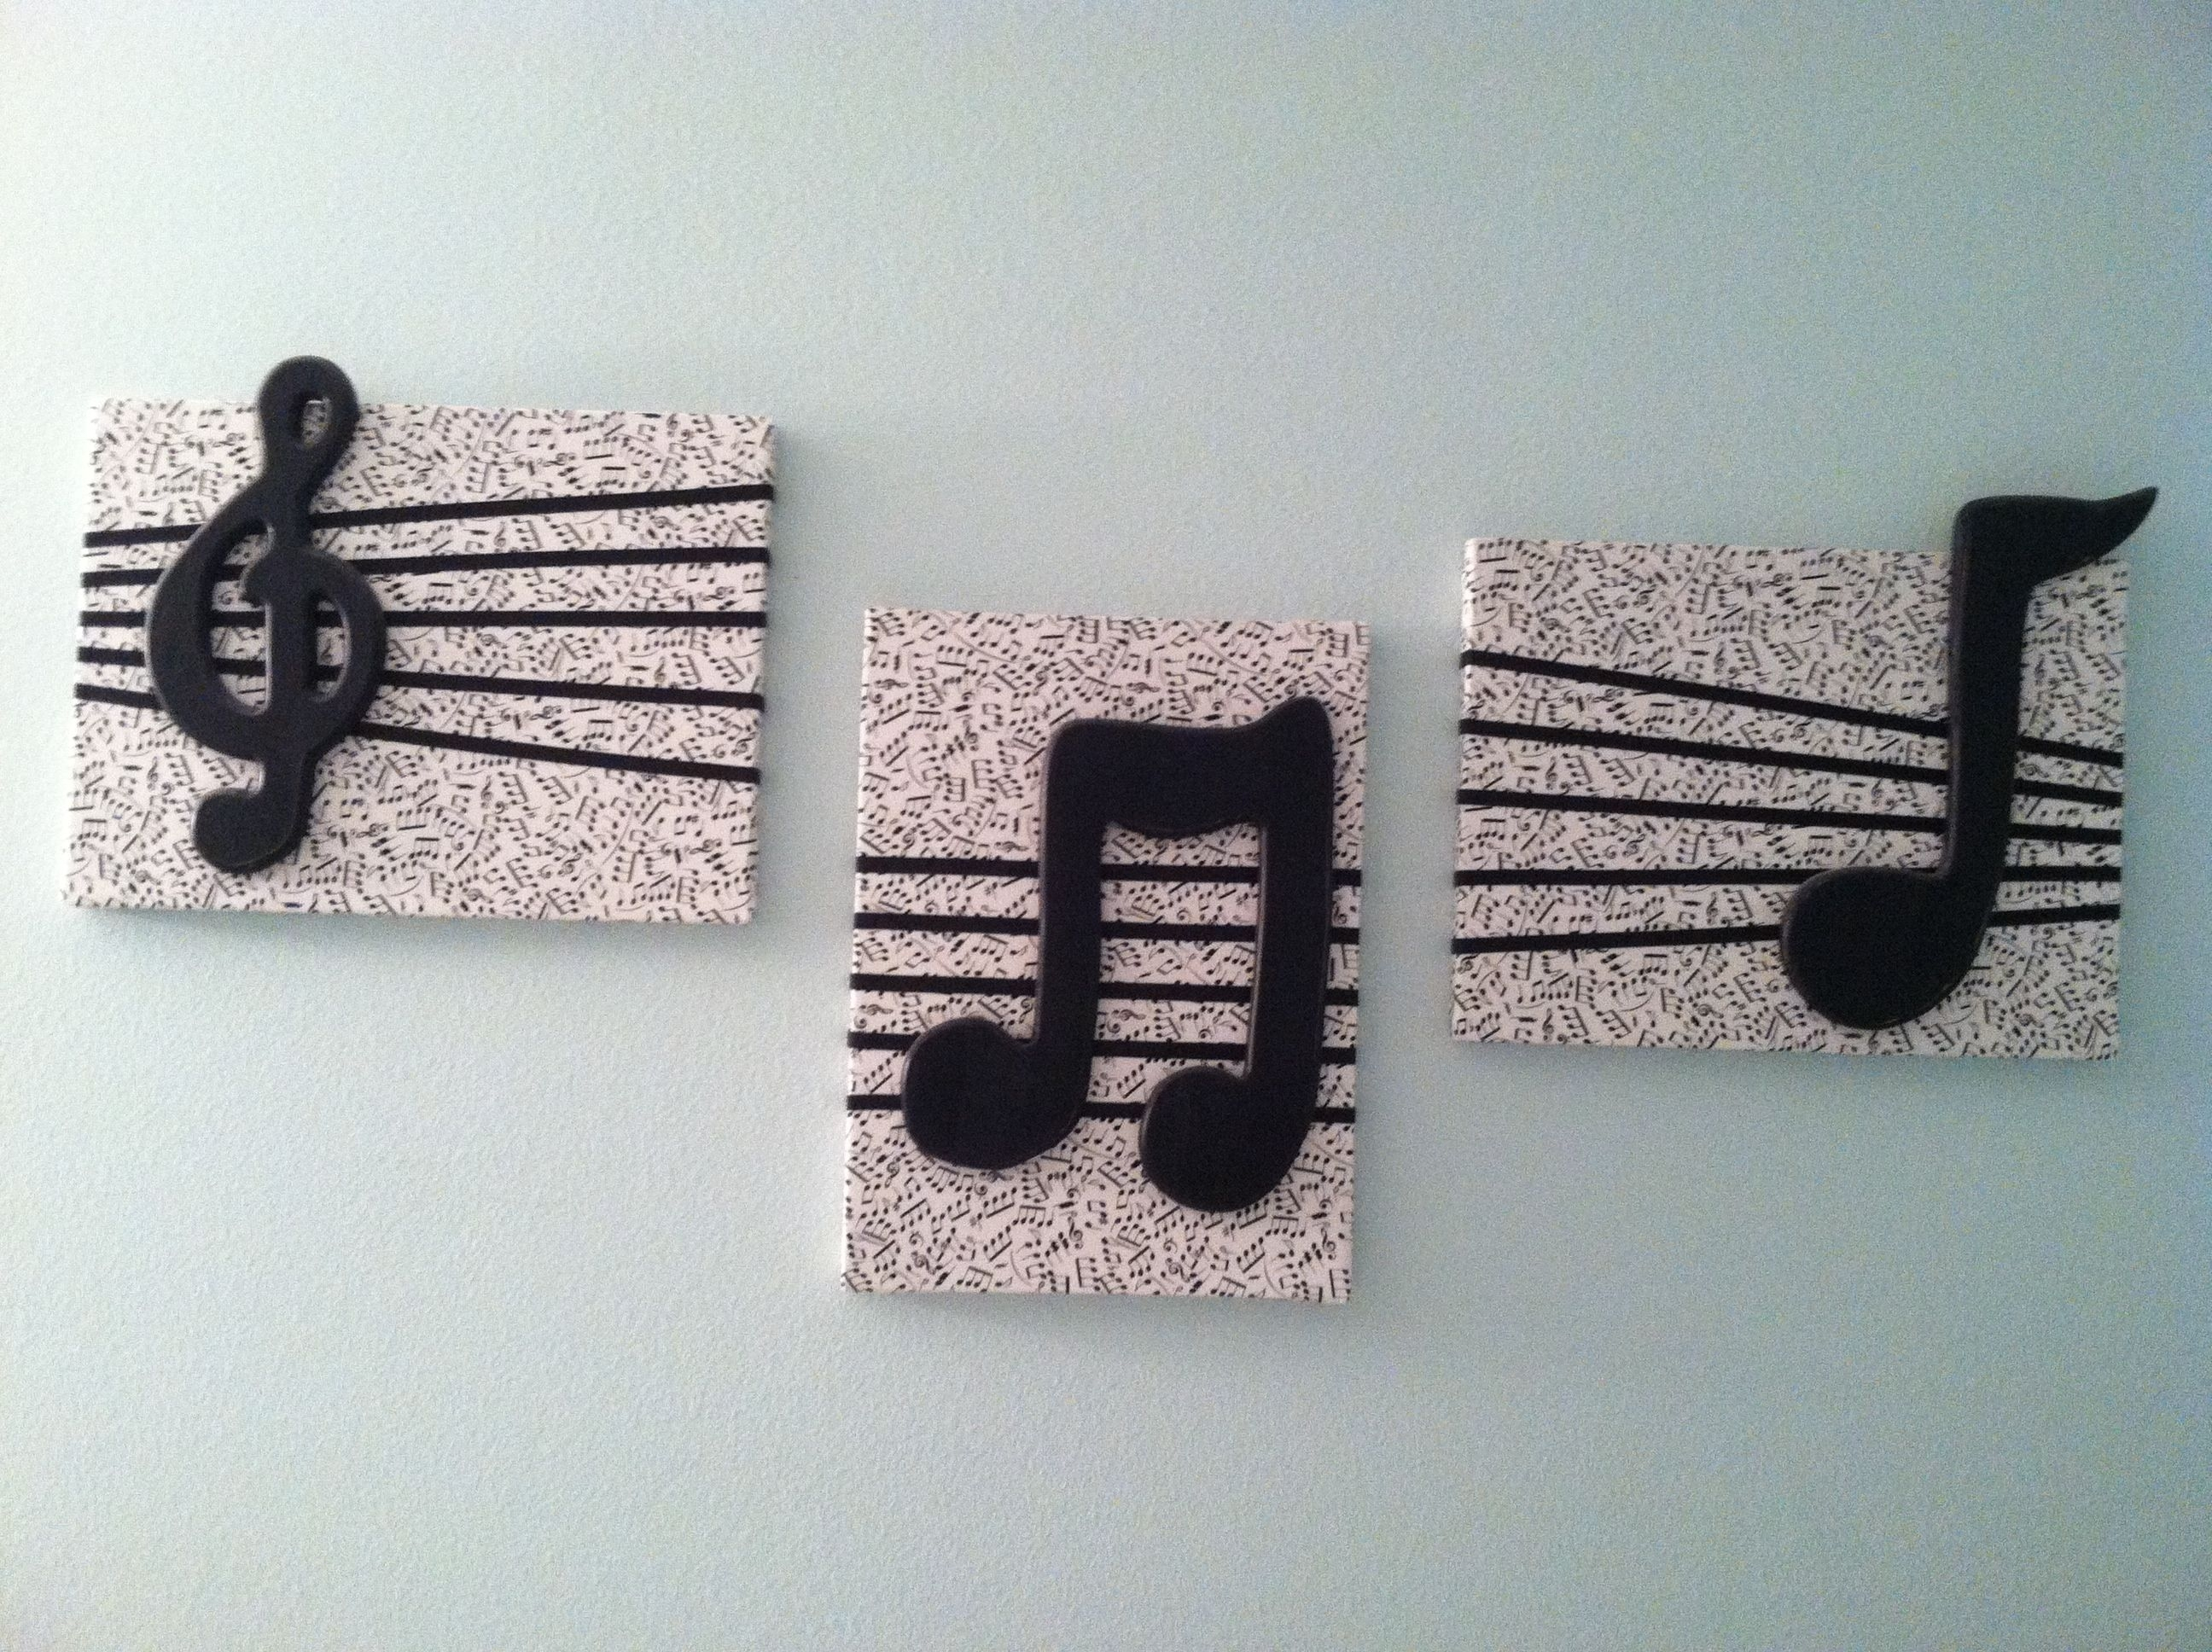 Diy Wall Decor  Cover Canvas Squares With Music Note Fabric, Add Pertaining To Most Up To Date Fabric Covered Squares Wall Art (View 4 of 15)